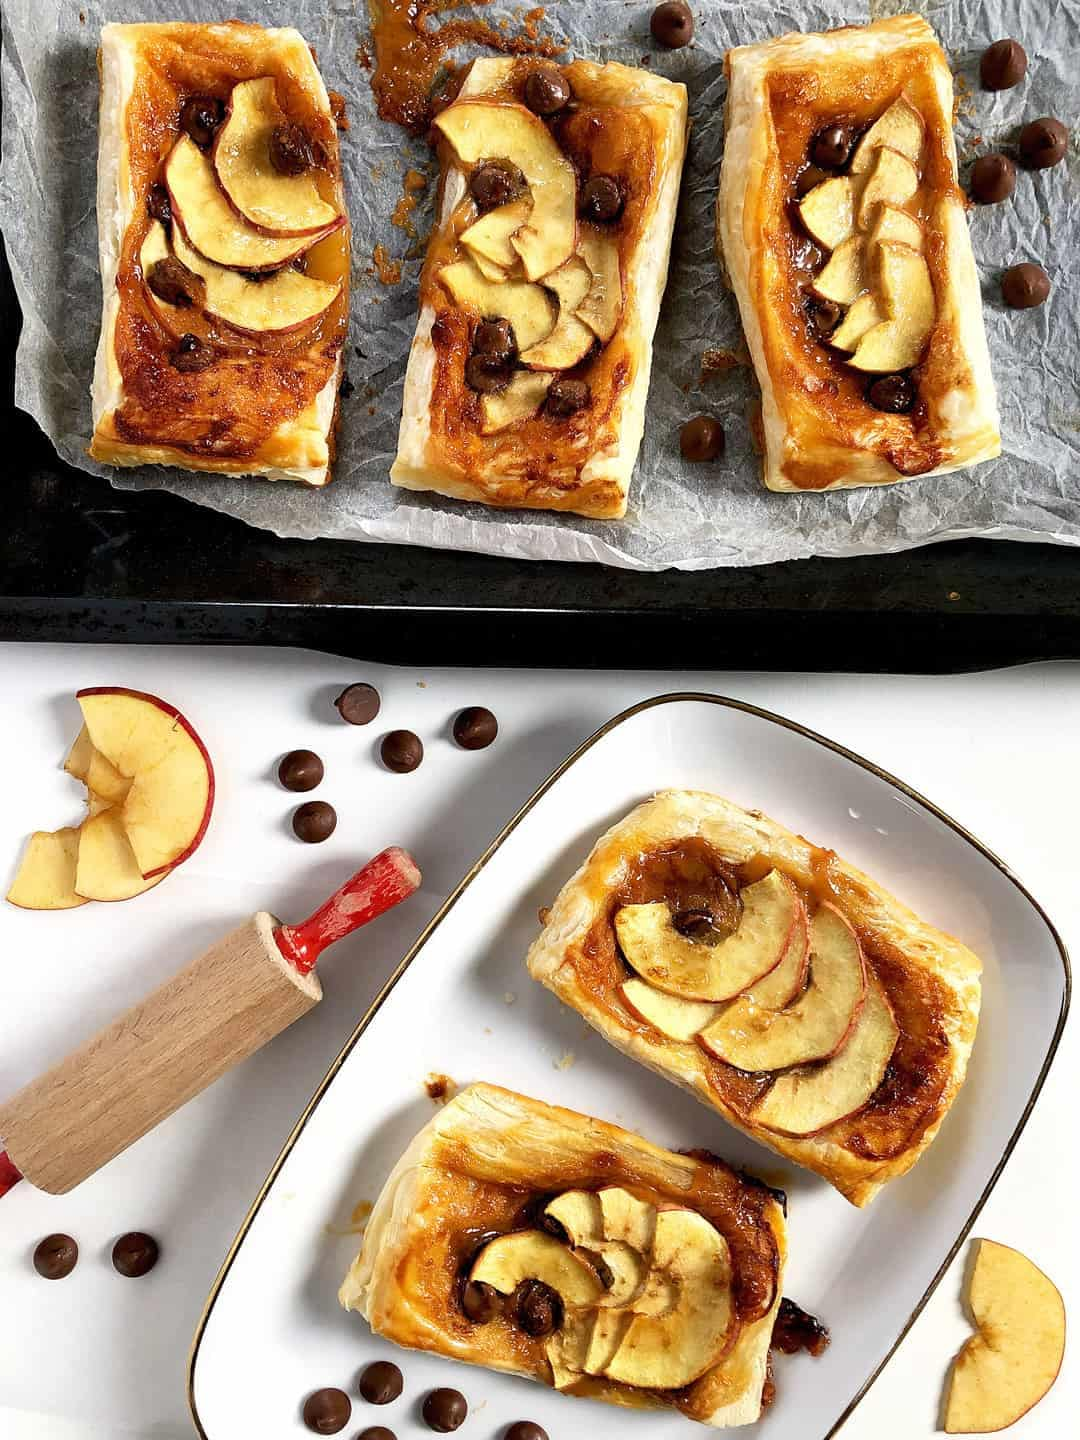 Toffee Apple Tarts with Puff Pastry and Chocolate Chips